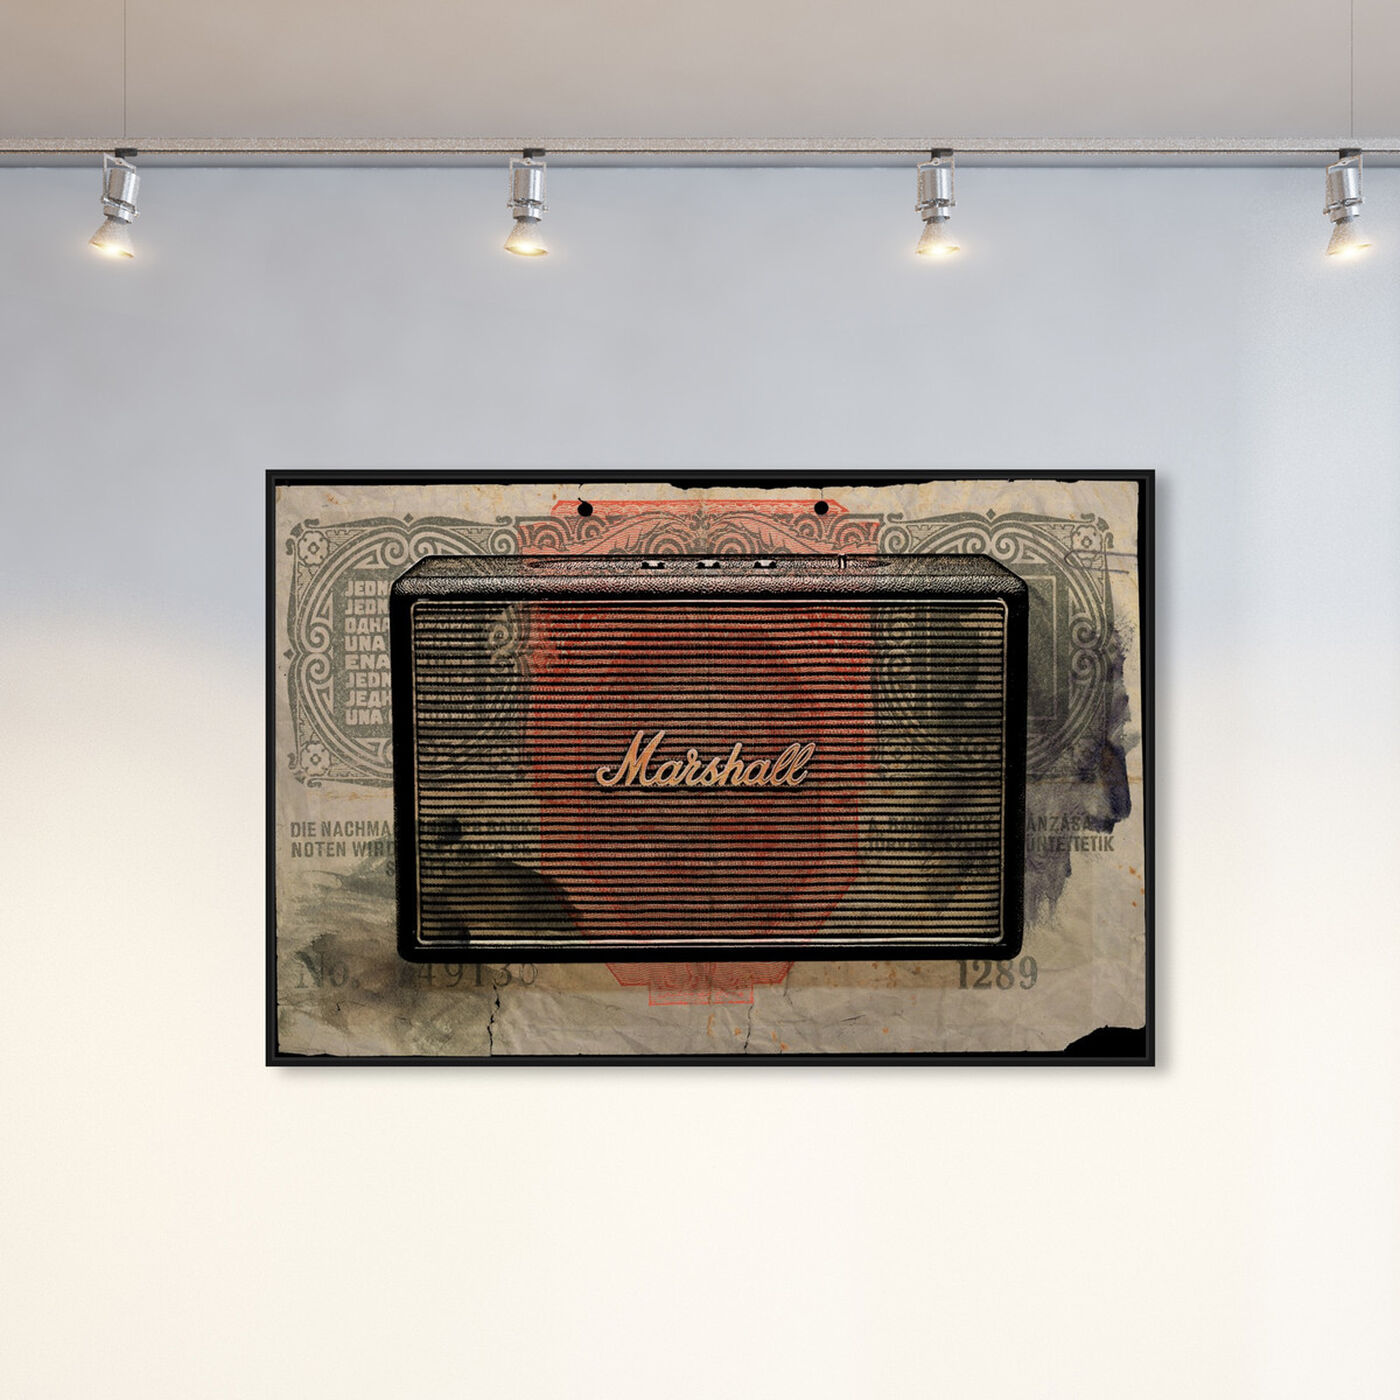 Hanging view of Marshall Audio featuring music and dance and music instruments art.